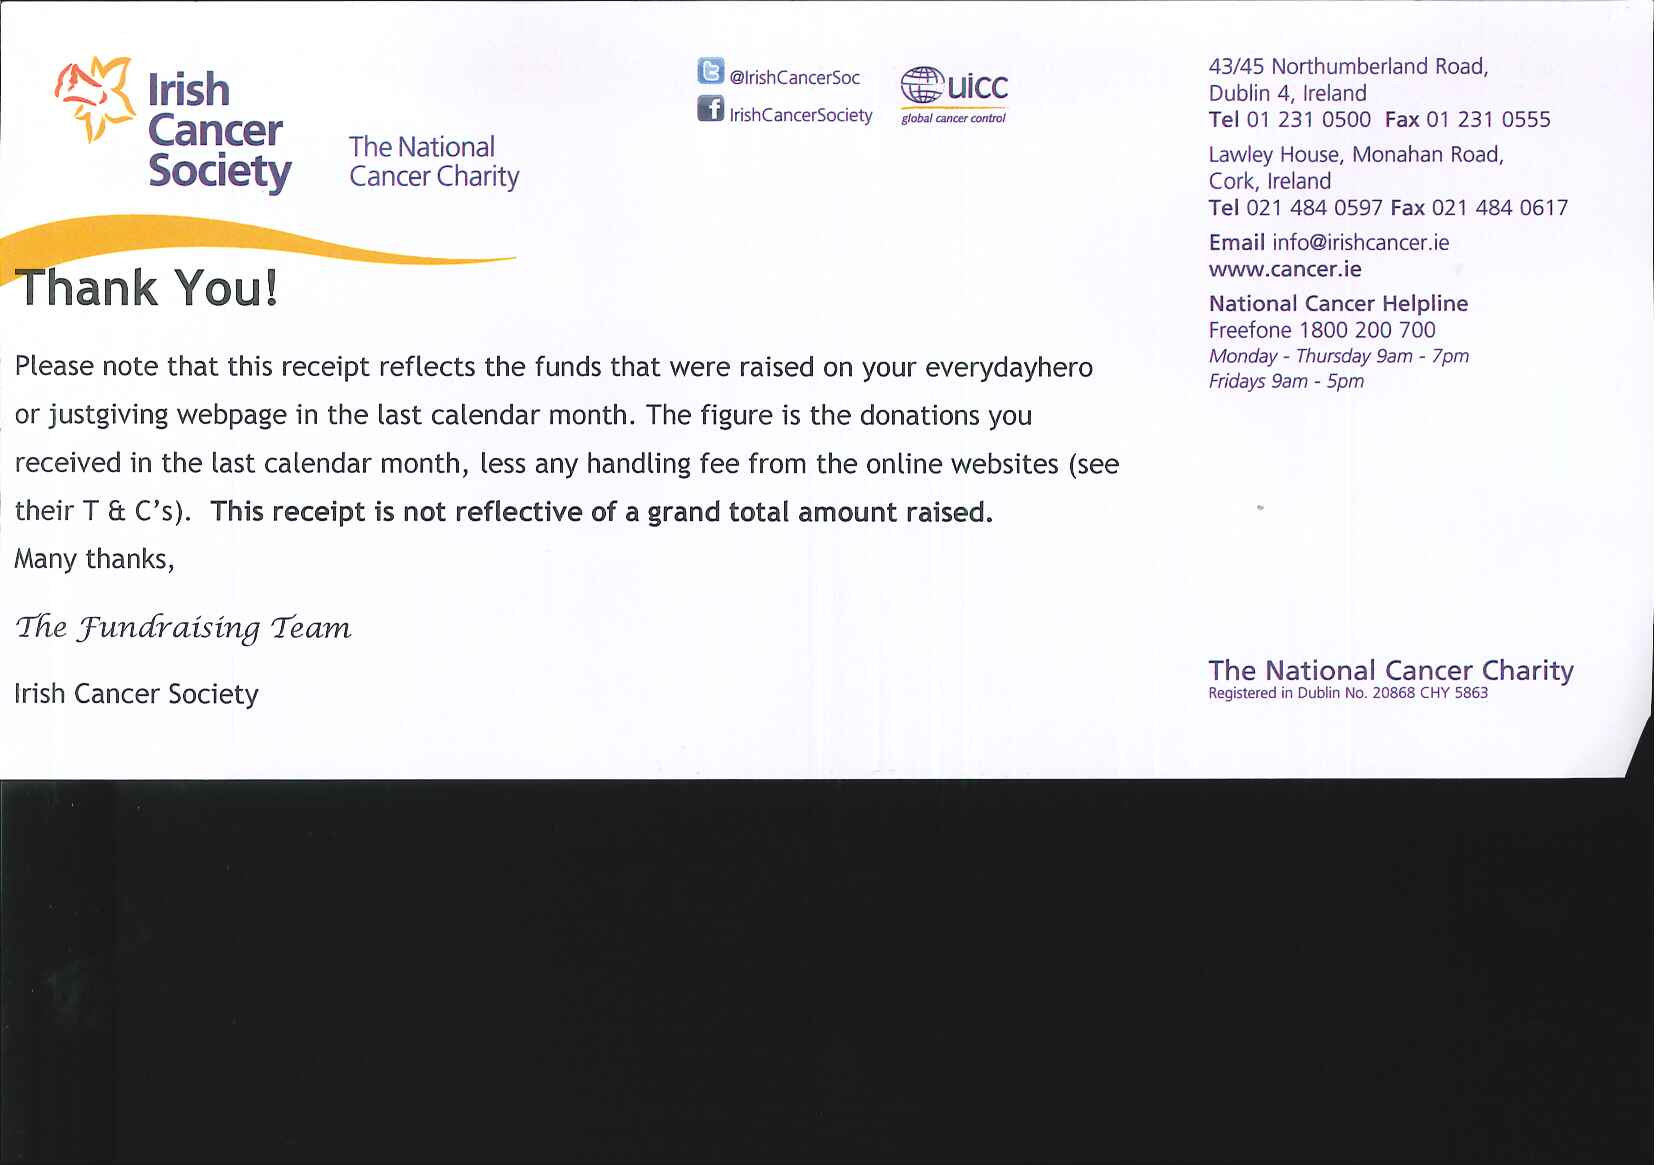 campaign gallery irish cancer society thank you letter and slip